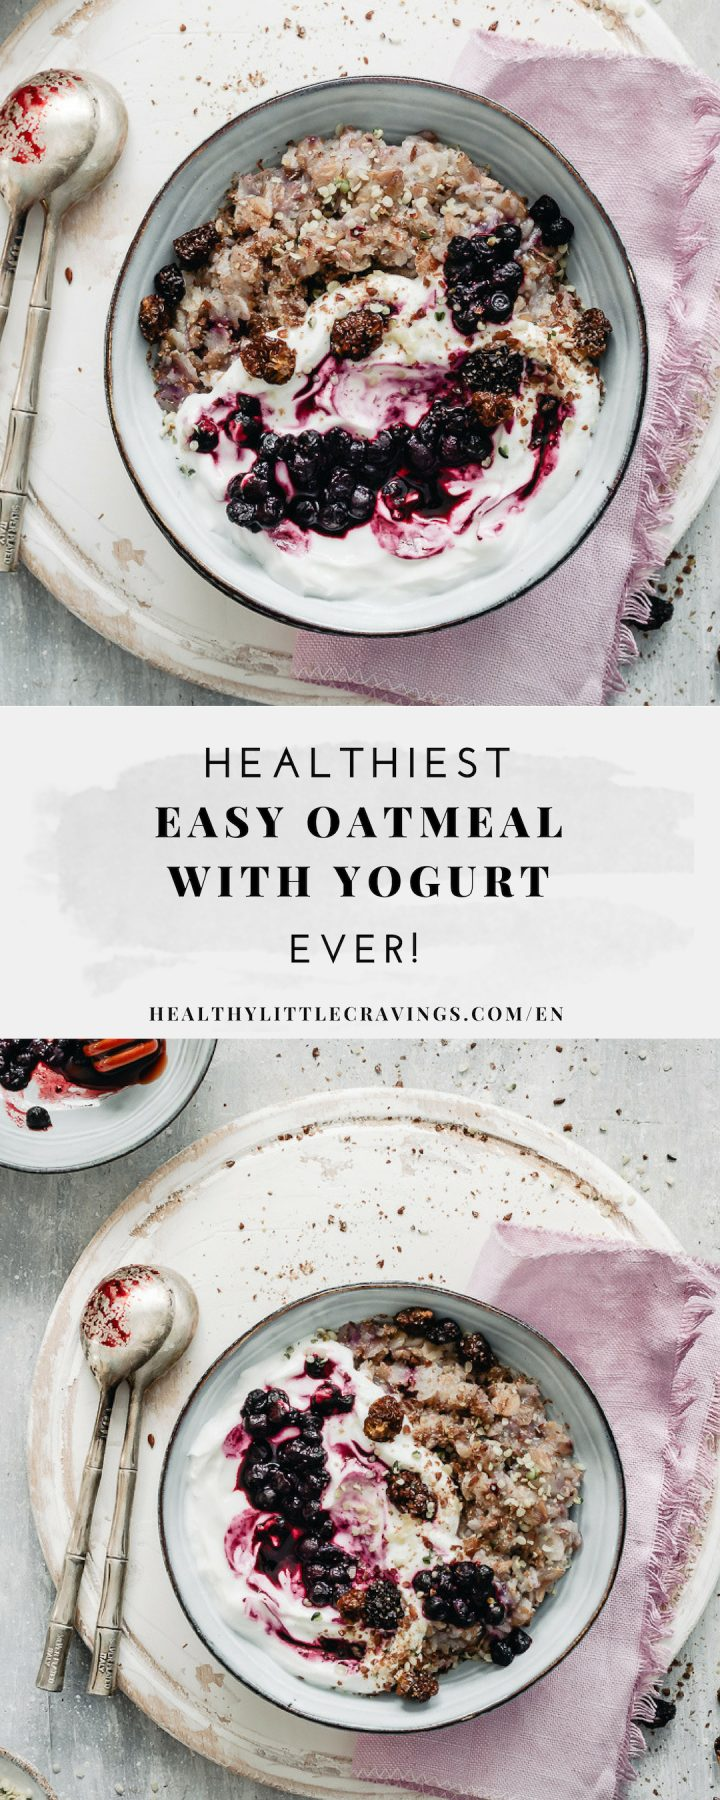 Oatmeal with yogurt for the perfect breakfast